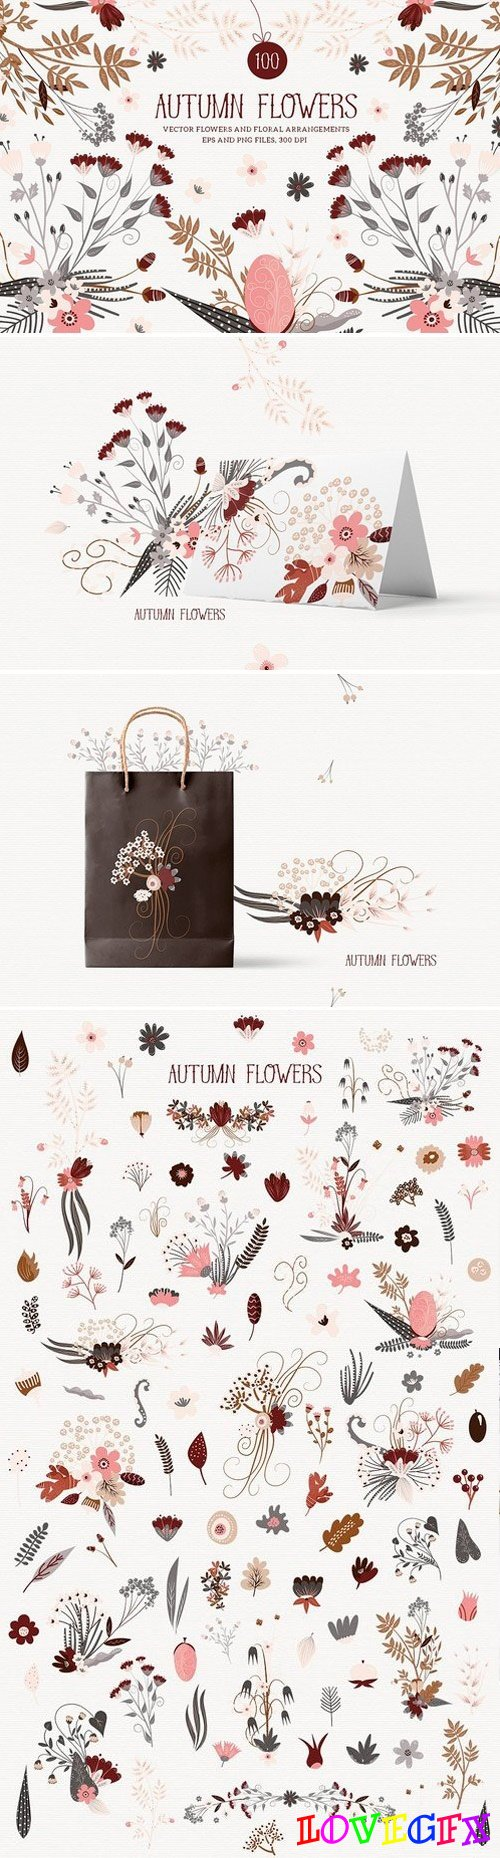 Autumn Flowers 1793046